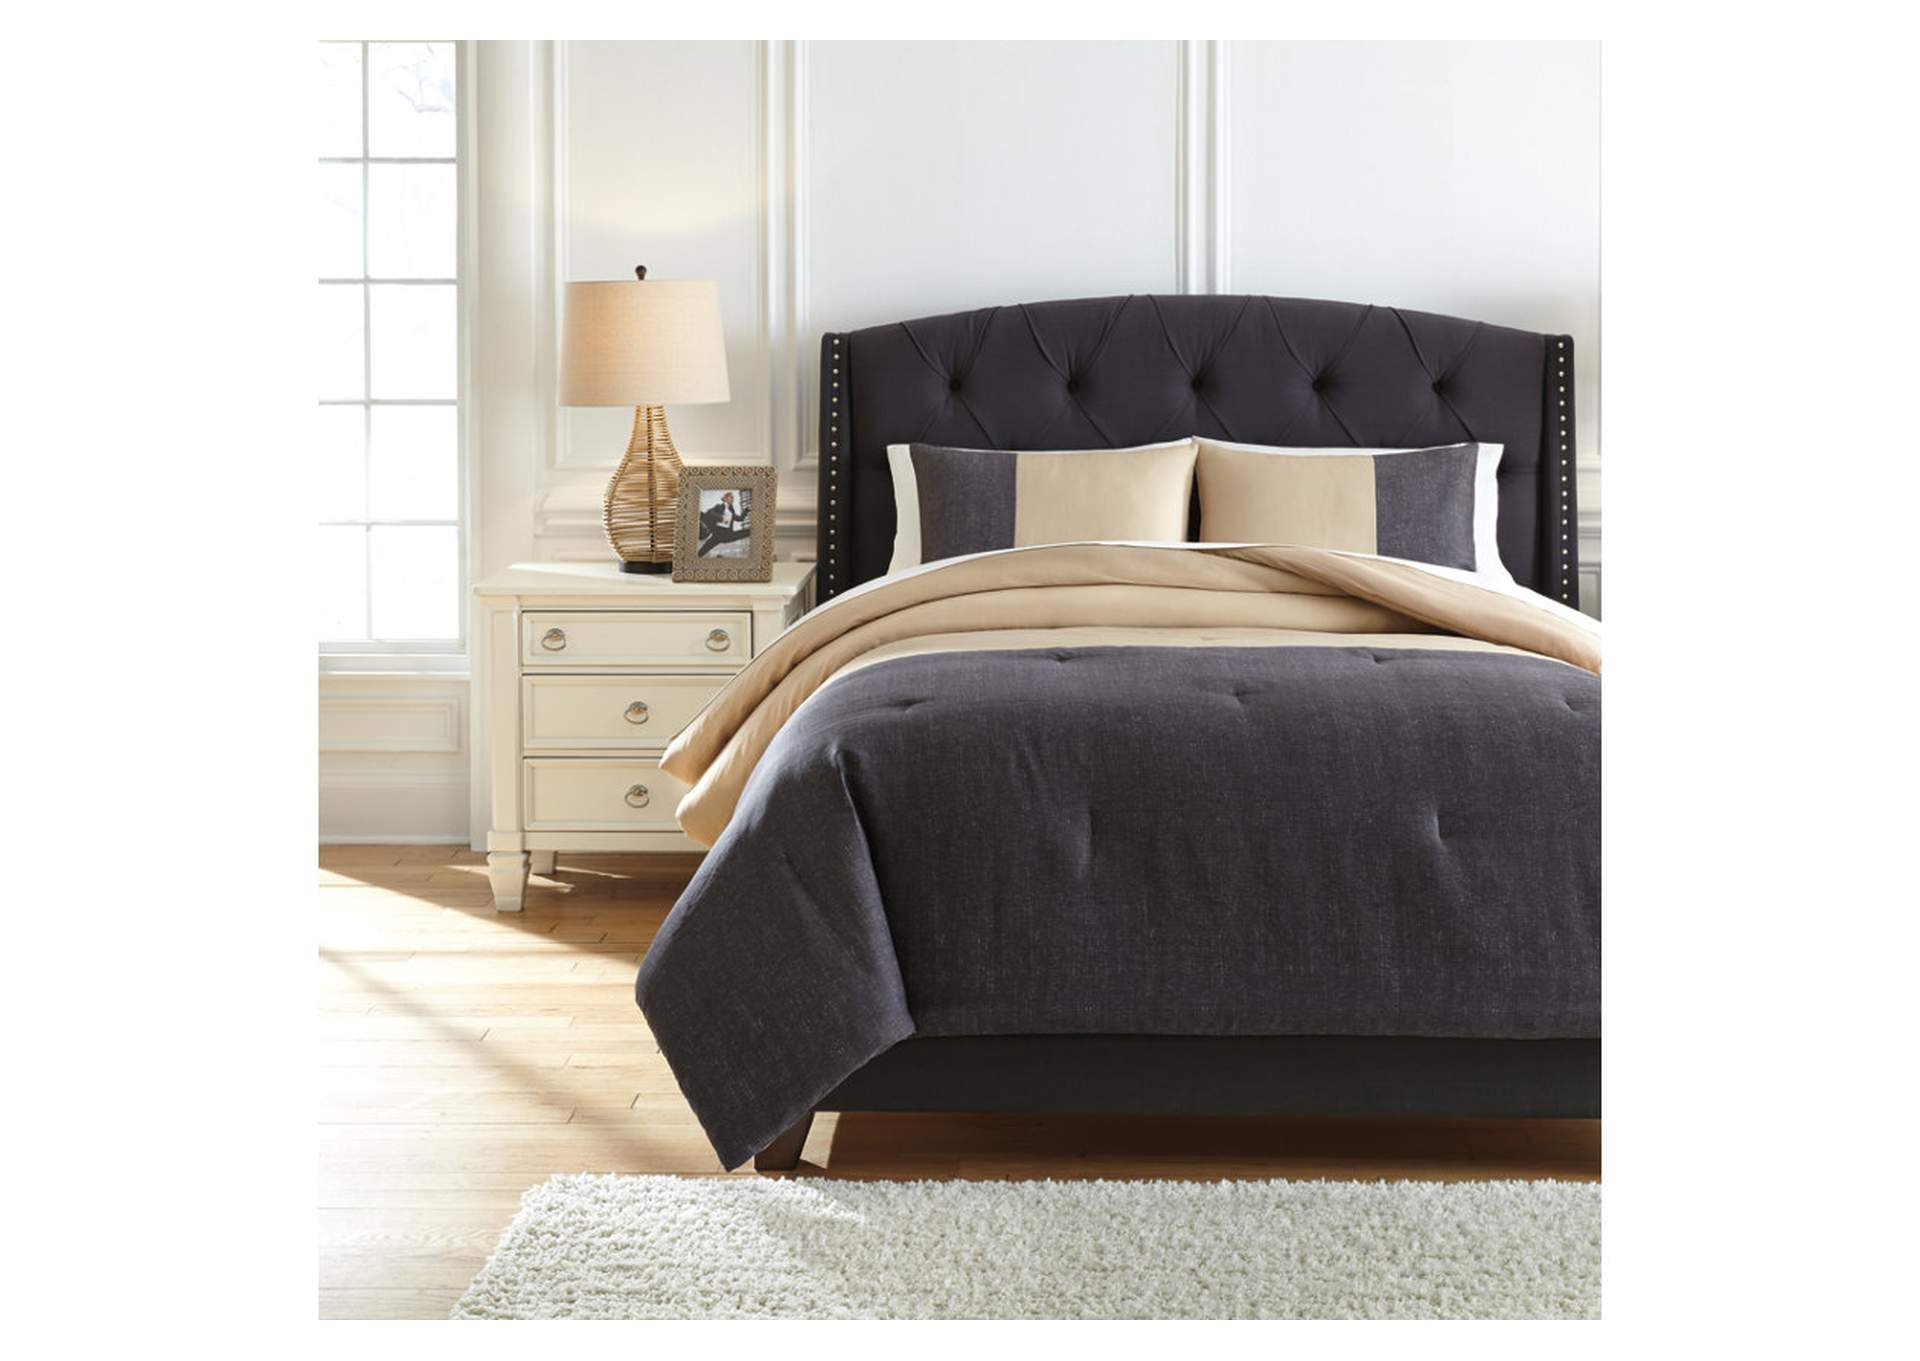 Medi Charcoal/Sand King Comforter Set,Signature Design By Ashley